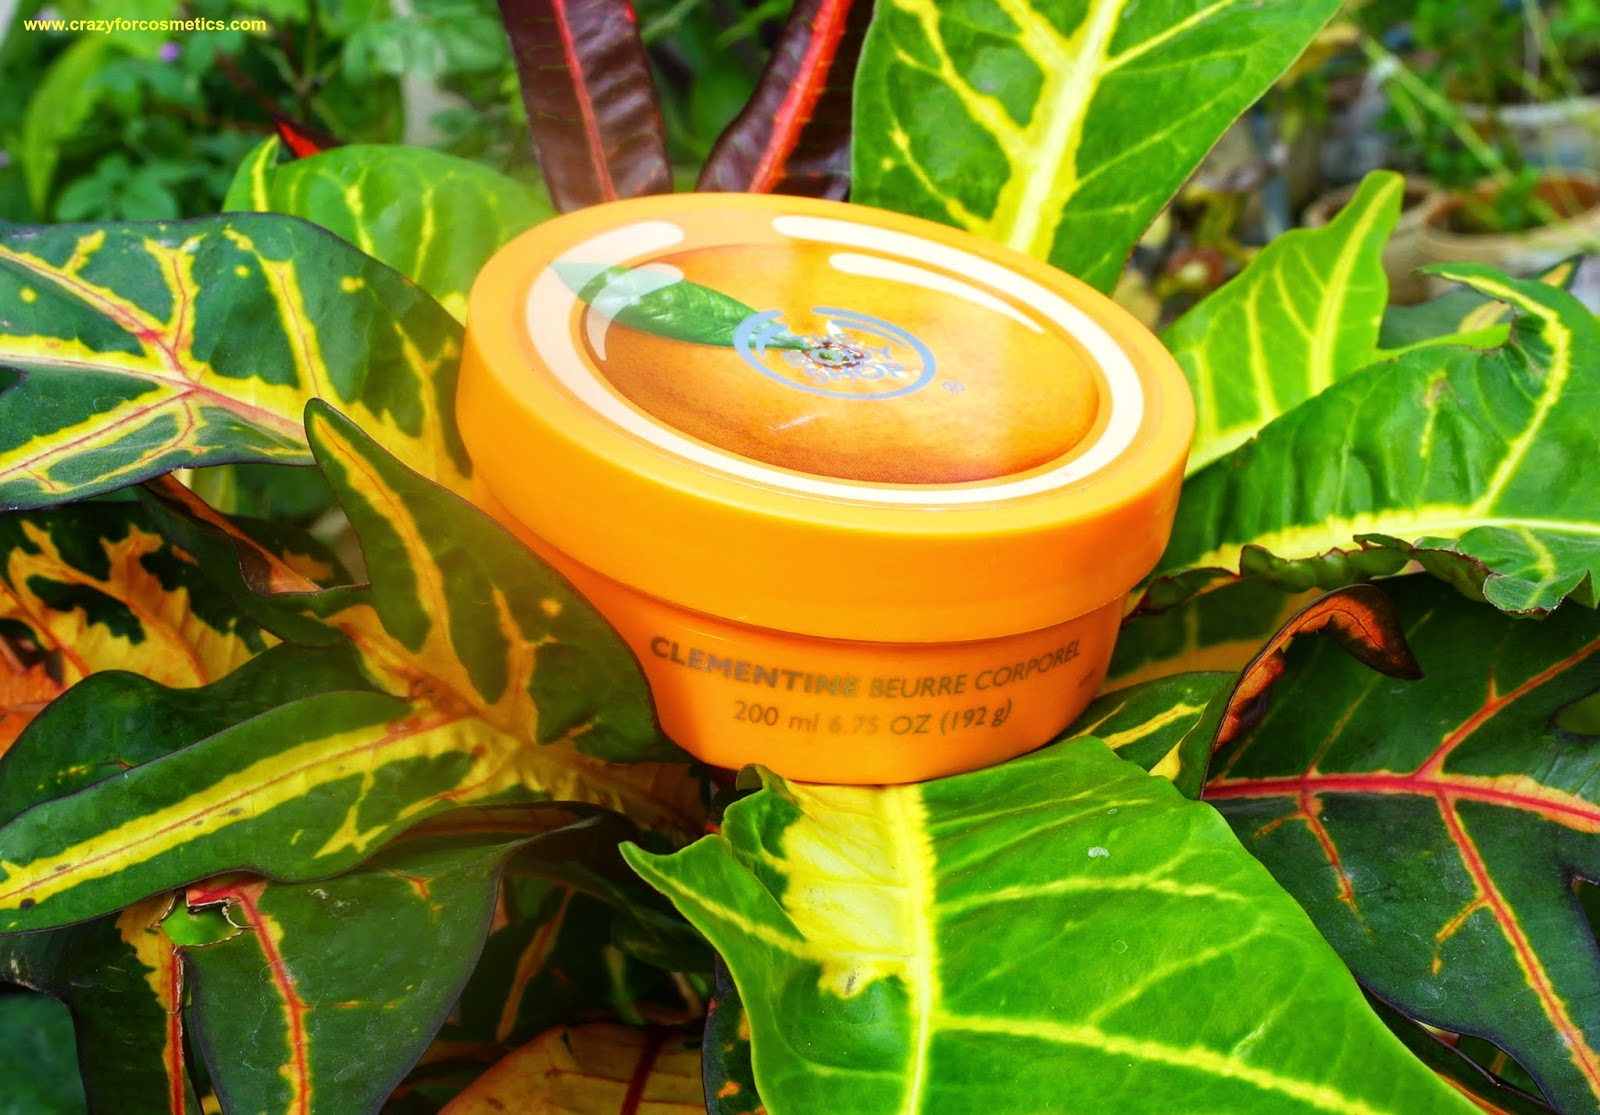 The Body Shop Satsuma Body butter packaging